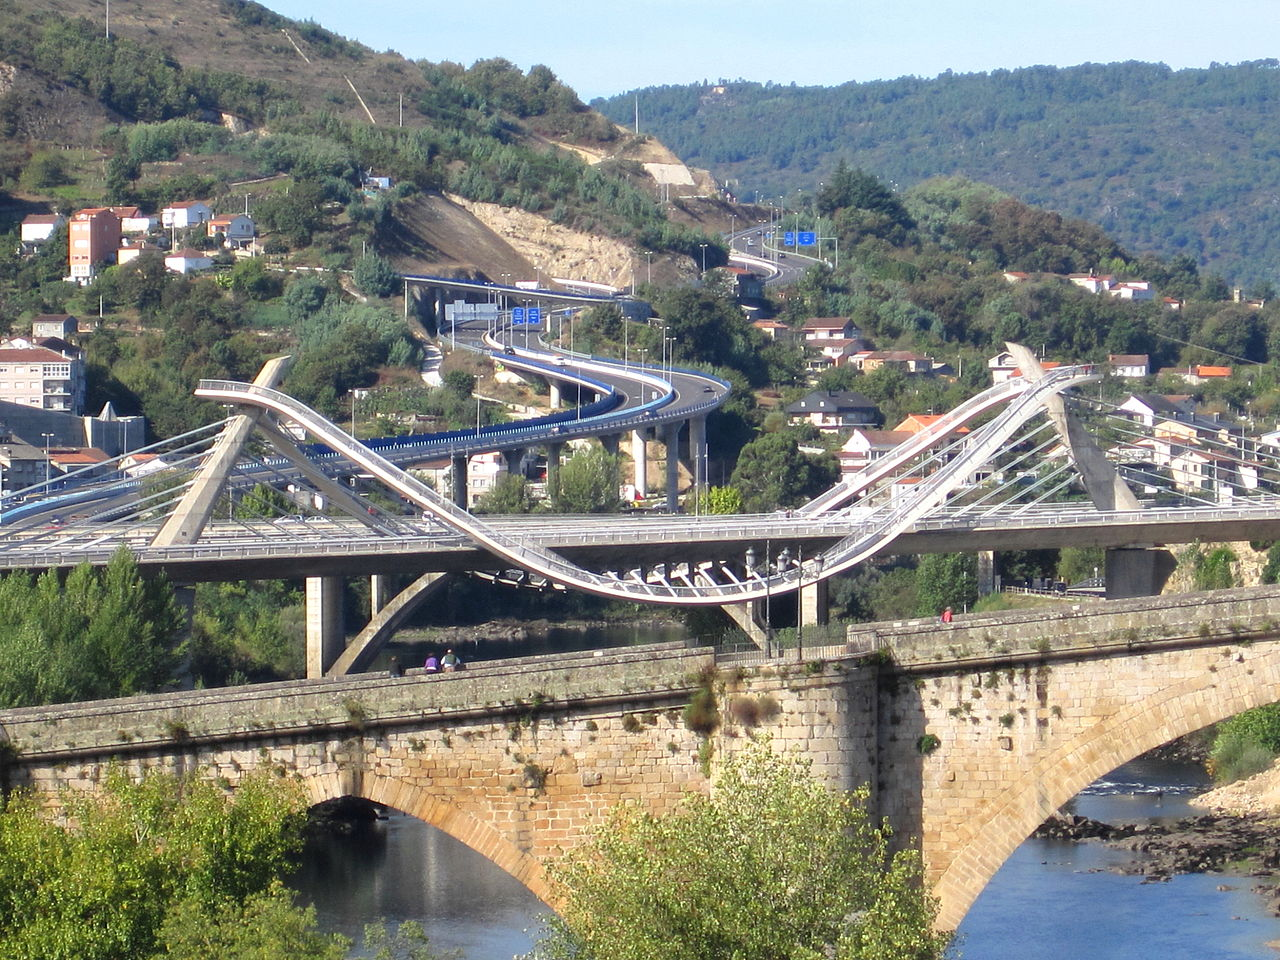 Ourense Spain  City new picture : ... :Puente Romano y Puente del Milenio. Ourense. Wikimedia Commons